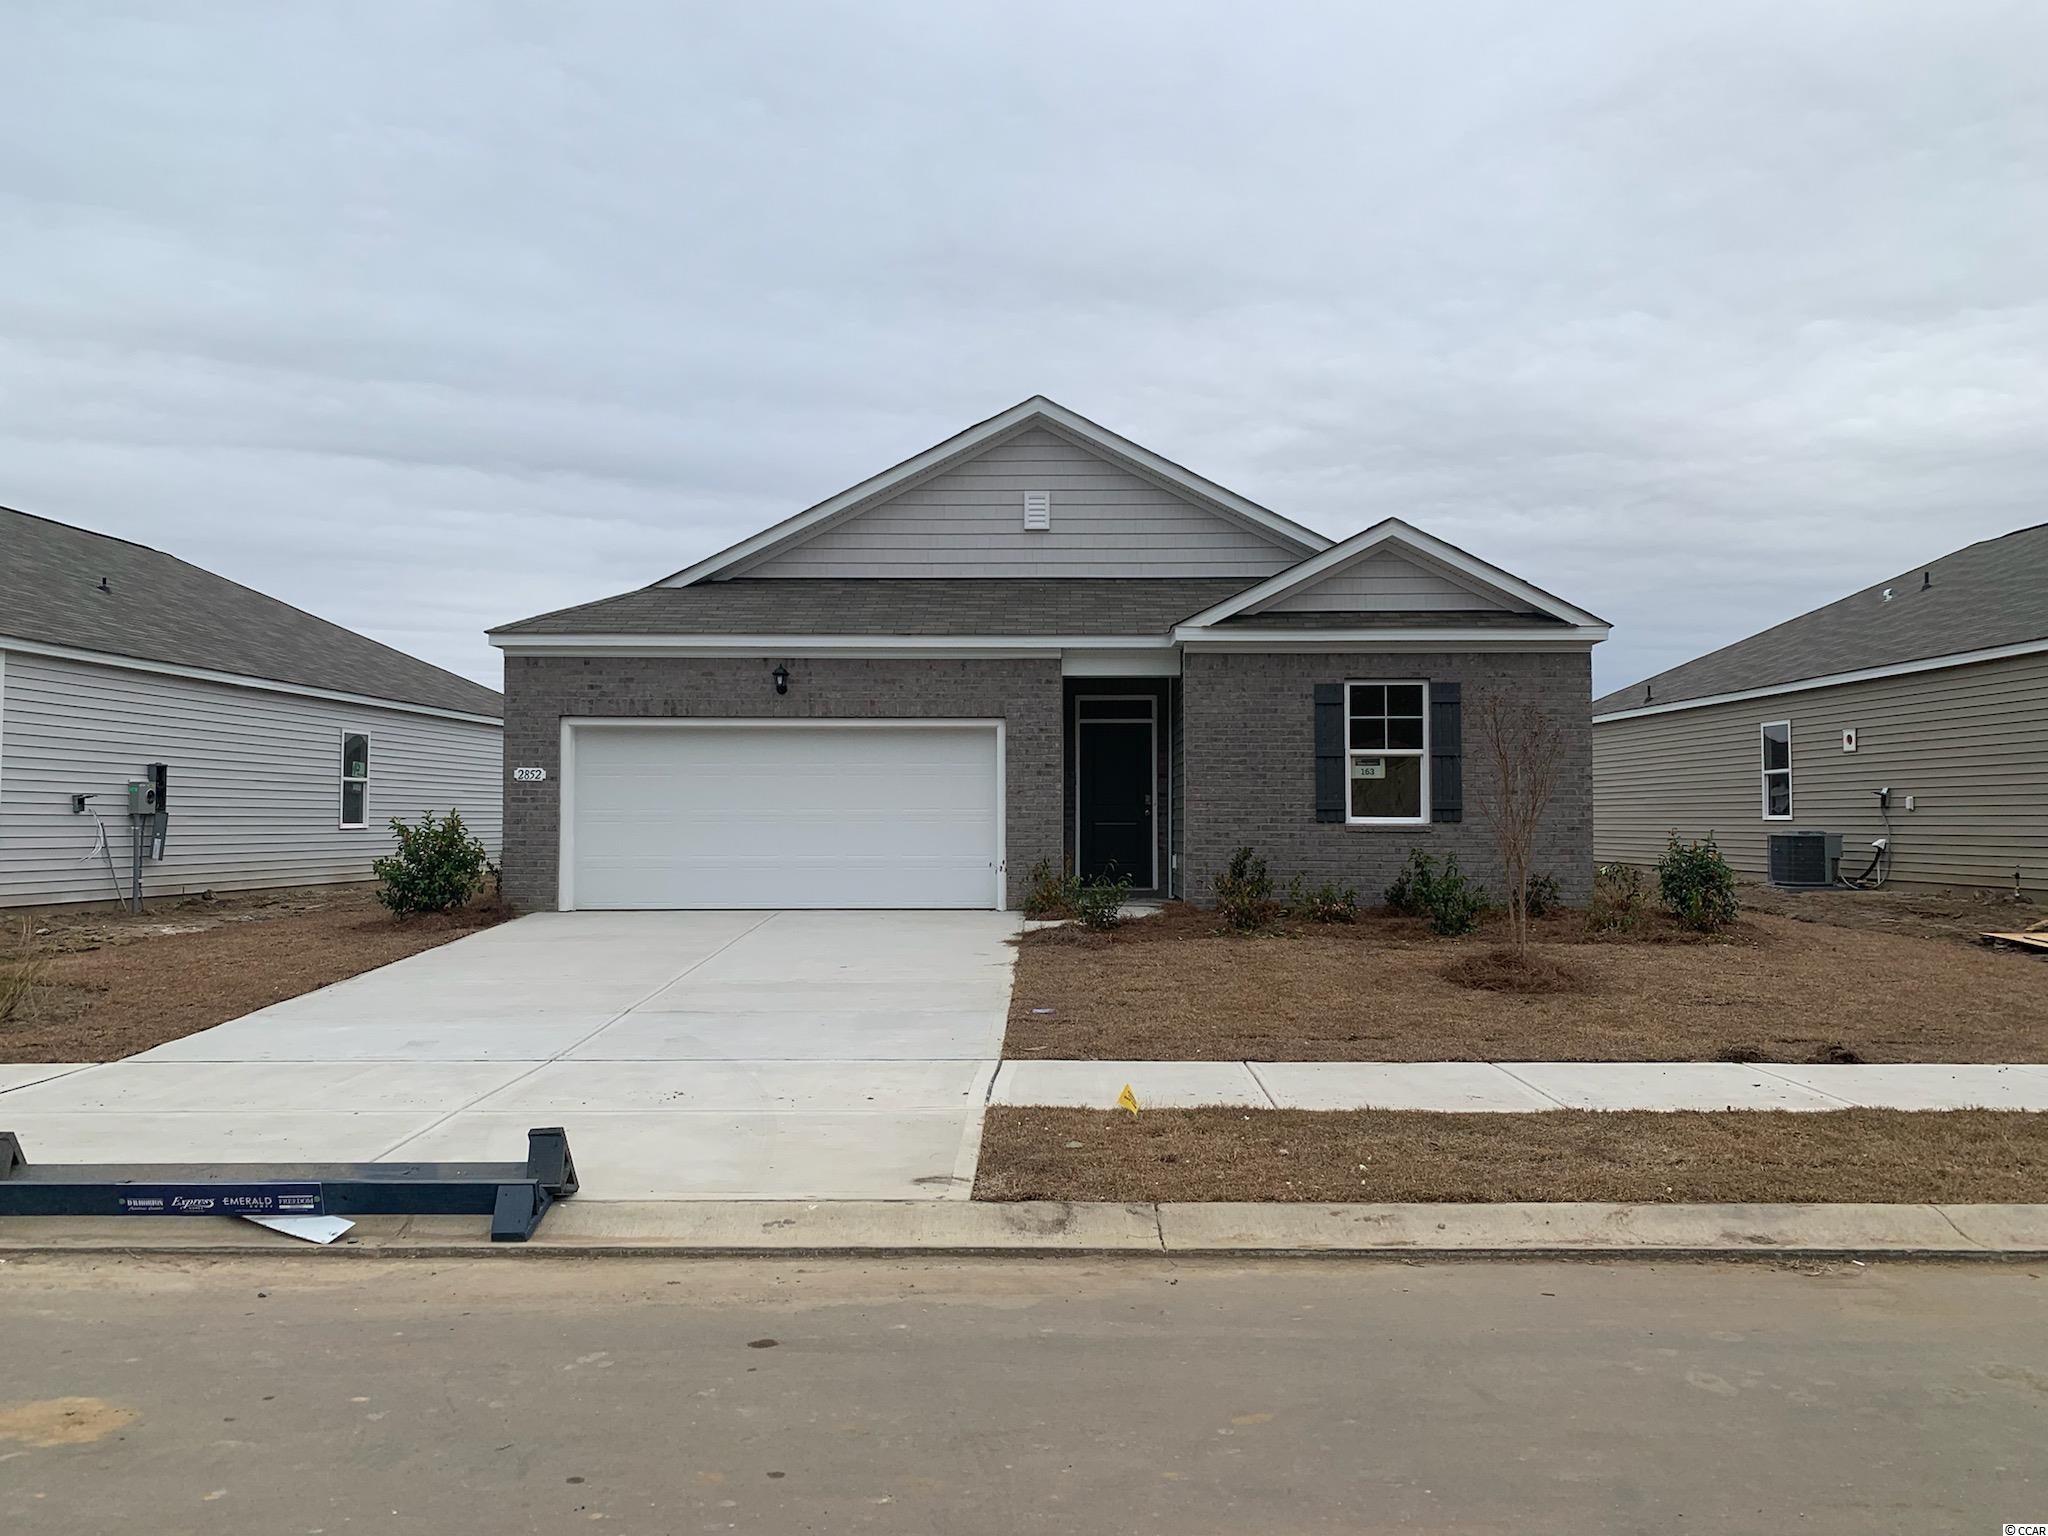 New phase now selling at Meridian! The Kerry offers one level living at its best! Featuring an open concept design with 9 ft. ceilings and plenty of room for entertaining. The spacious kitchen offers white painted cabinets, granite countertops, a large island with breakfast bar, and stainless Whirlpool appliances. Tons of closet storage and a large laundry room! The private primary bedroom suite has a walk-in closet and en suite bath with a dual vanity and 5 ft. shower. Covered rear porch for additional outdoor living space overlooking the pond. Conveniences like low maintenance laminate wood flooring throughout the main living areas, a tankless gas water heater, two-car garage with a garage door opener, and our industry leading smart home technology package will also be included! Enjoy wonderful amenities and a fantastic location just minutes away from shopping, dining, and the beach! *Photos are of a similar Kerry home. (Home and community information, including pricing, included features, terms, availability and amenities, are subject to change prior to sale at any time without notice or obligation. Square footages are approximate. Pictures, photographs, colors, features, and sizes are for illustration purposes only and will vary from the homes as built. Equal housing opportunity builder.)